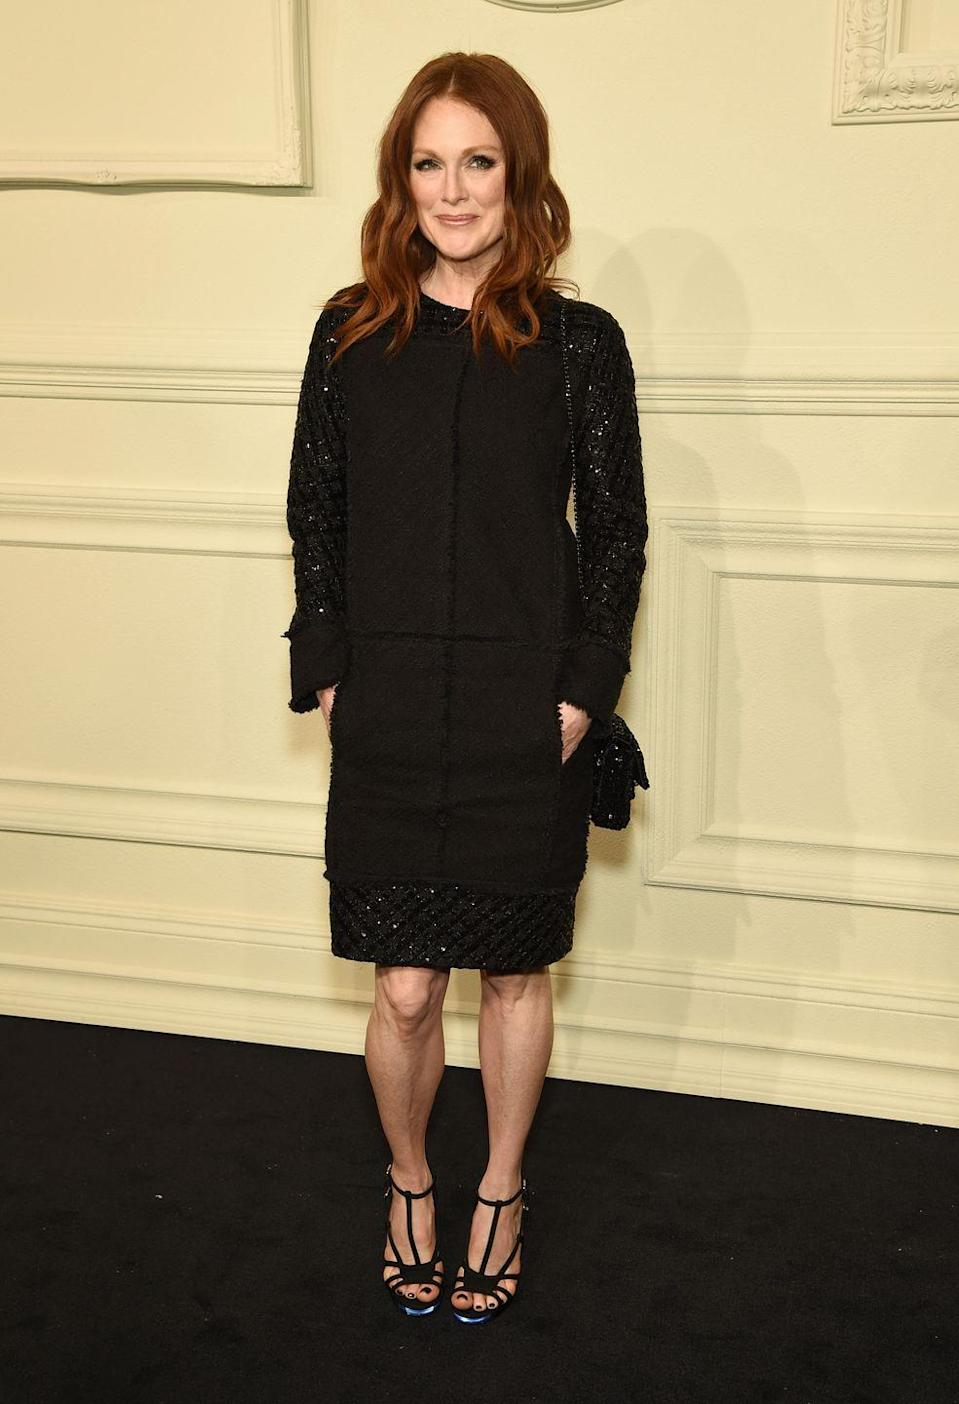 <p>Coco Chanel is the mother of the little black dress, and the fashion house continues to create gorgeous pieces today. Julianne Moore wears one of their tweed and sequin sheath designs at their fashion show in 2015. </p>